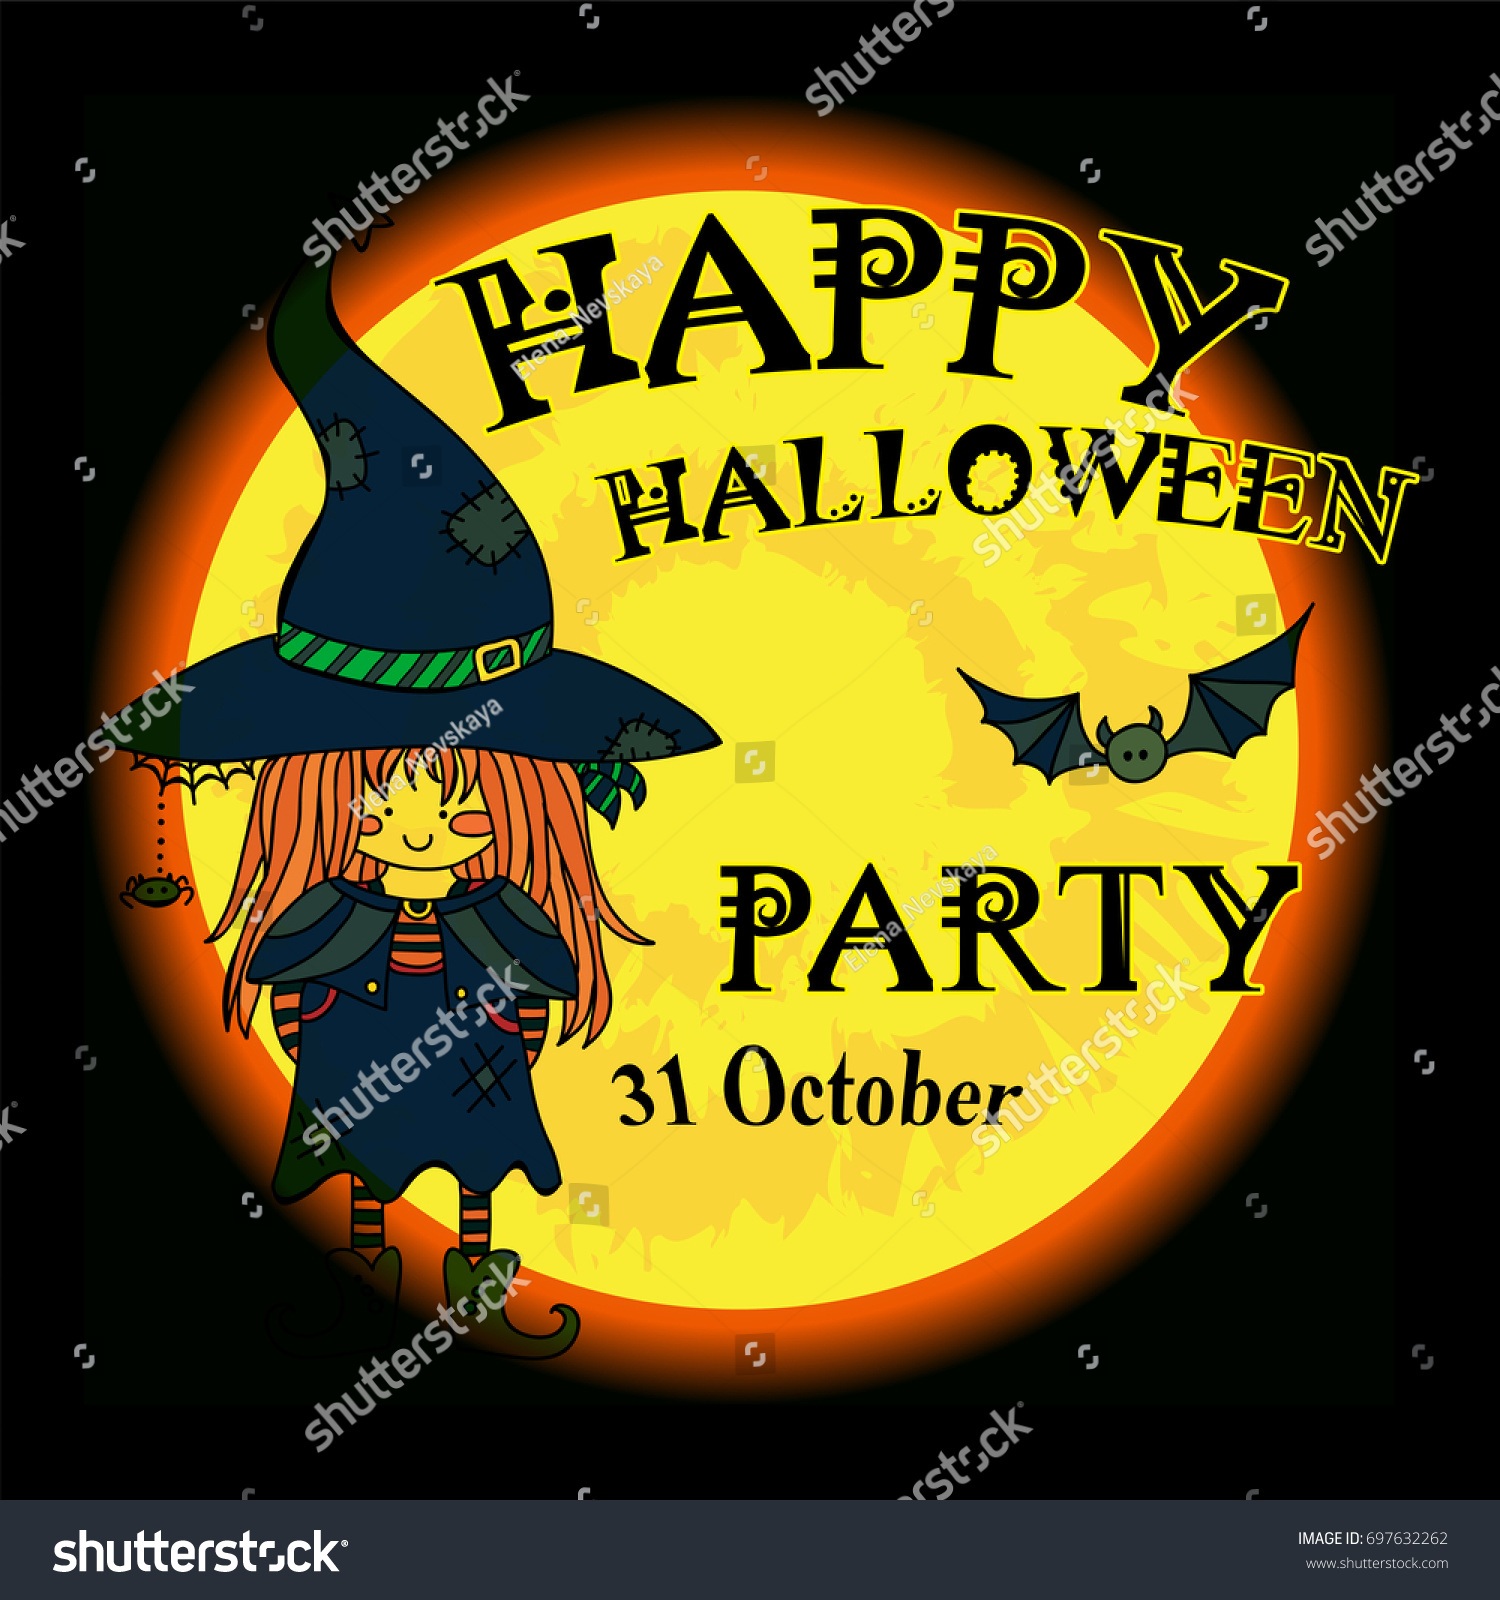 Vector Happy Halloween Party Invitation Card Stock Vector ...